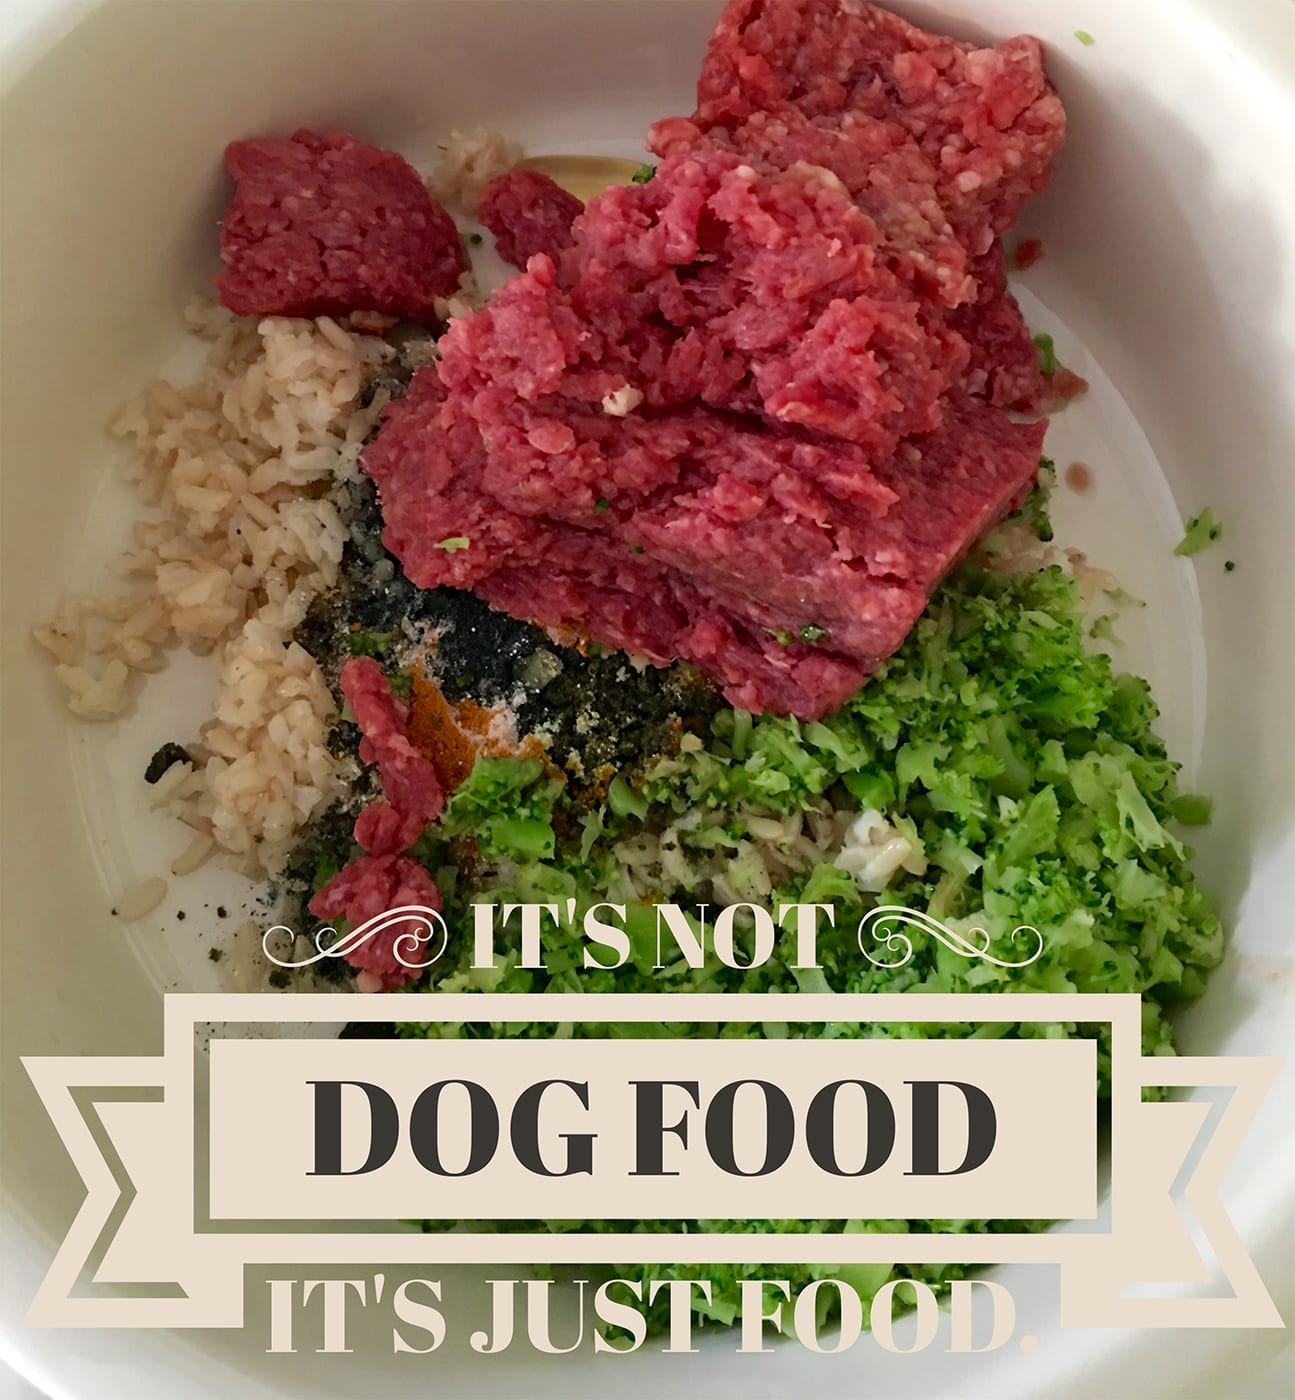 Dog Food for optimum health